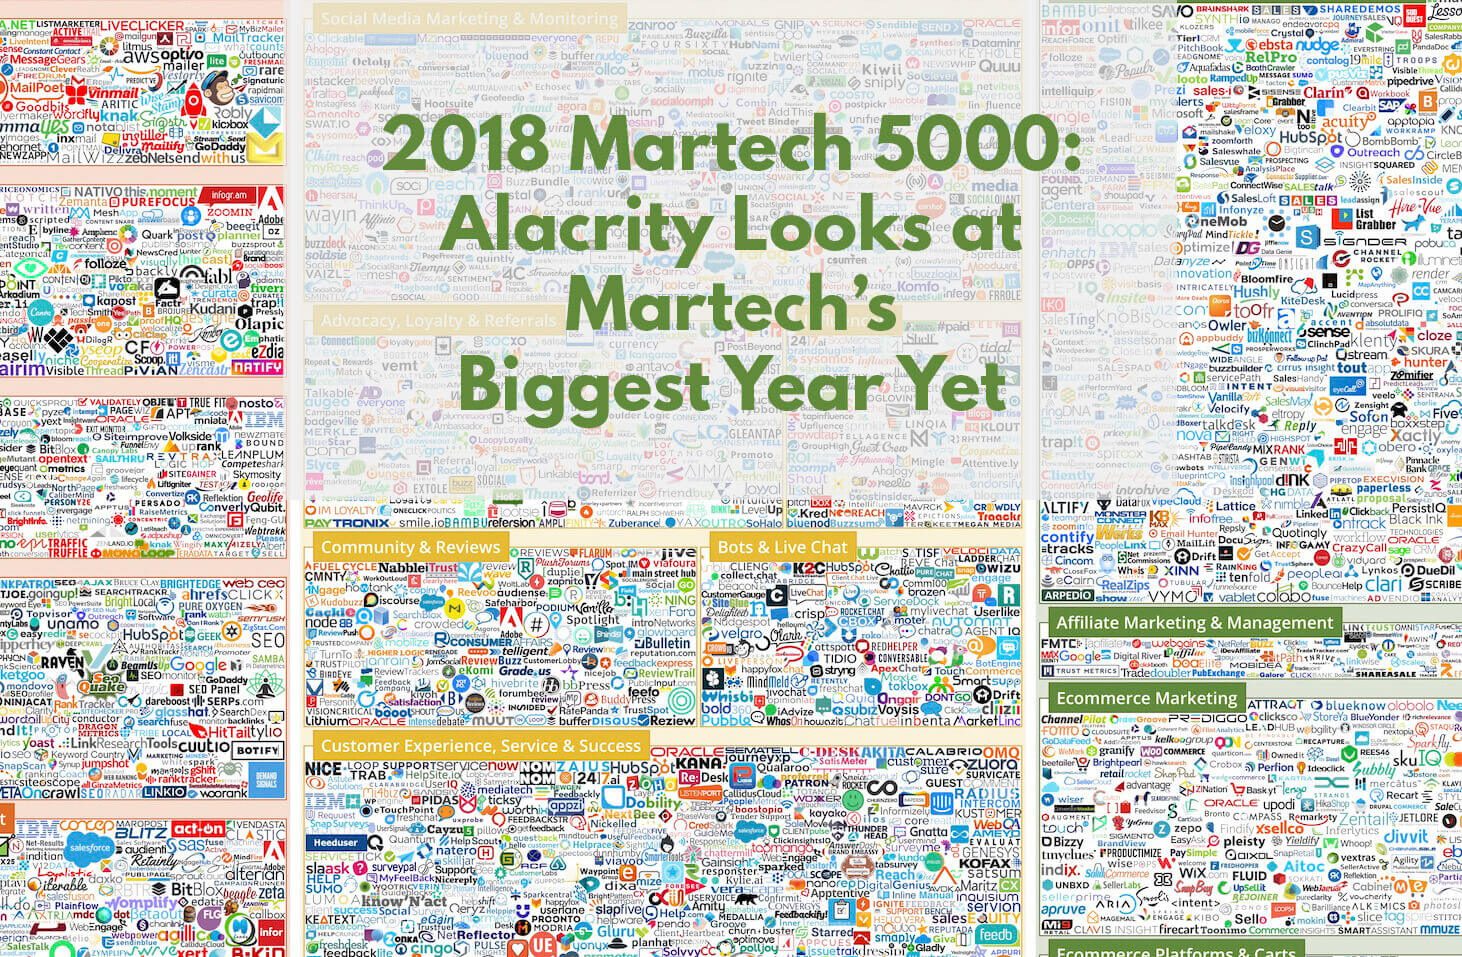 Alacrity looks at Martech's biggest year yet